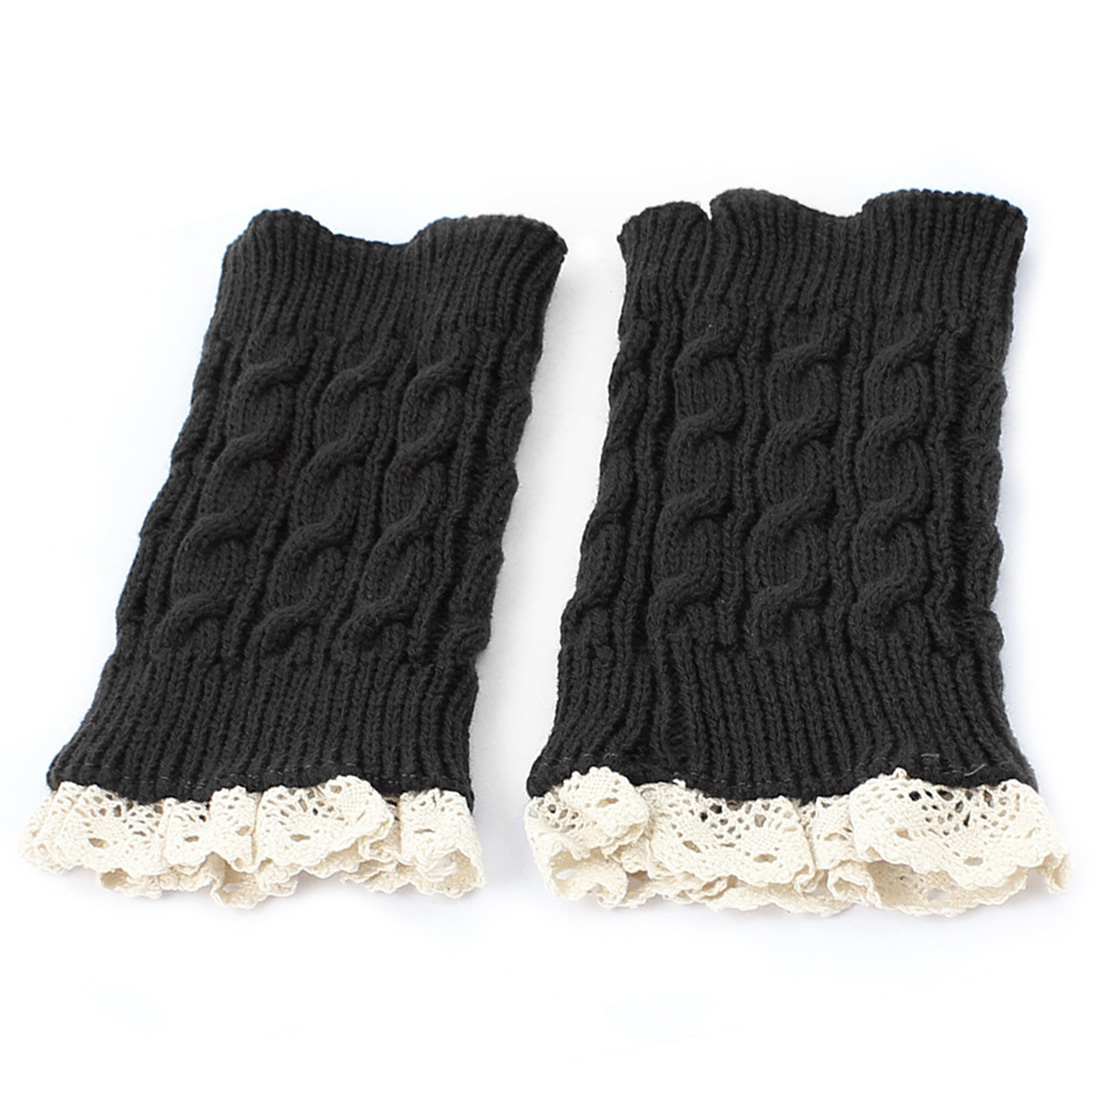 Lady Winter Lace Trim Knitted Crochet Leg Warmers Boot Cuff Pair Beige Dark Gray